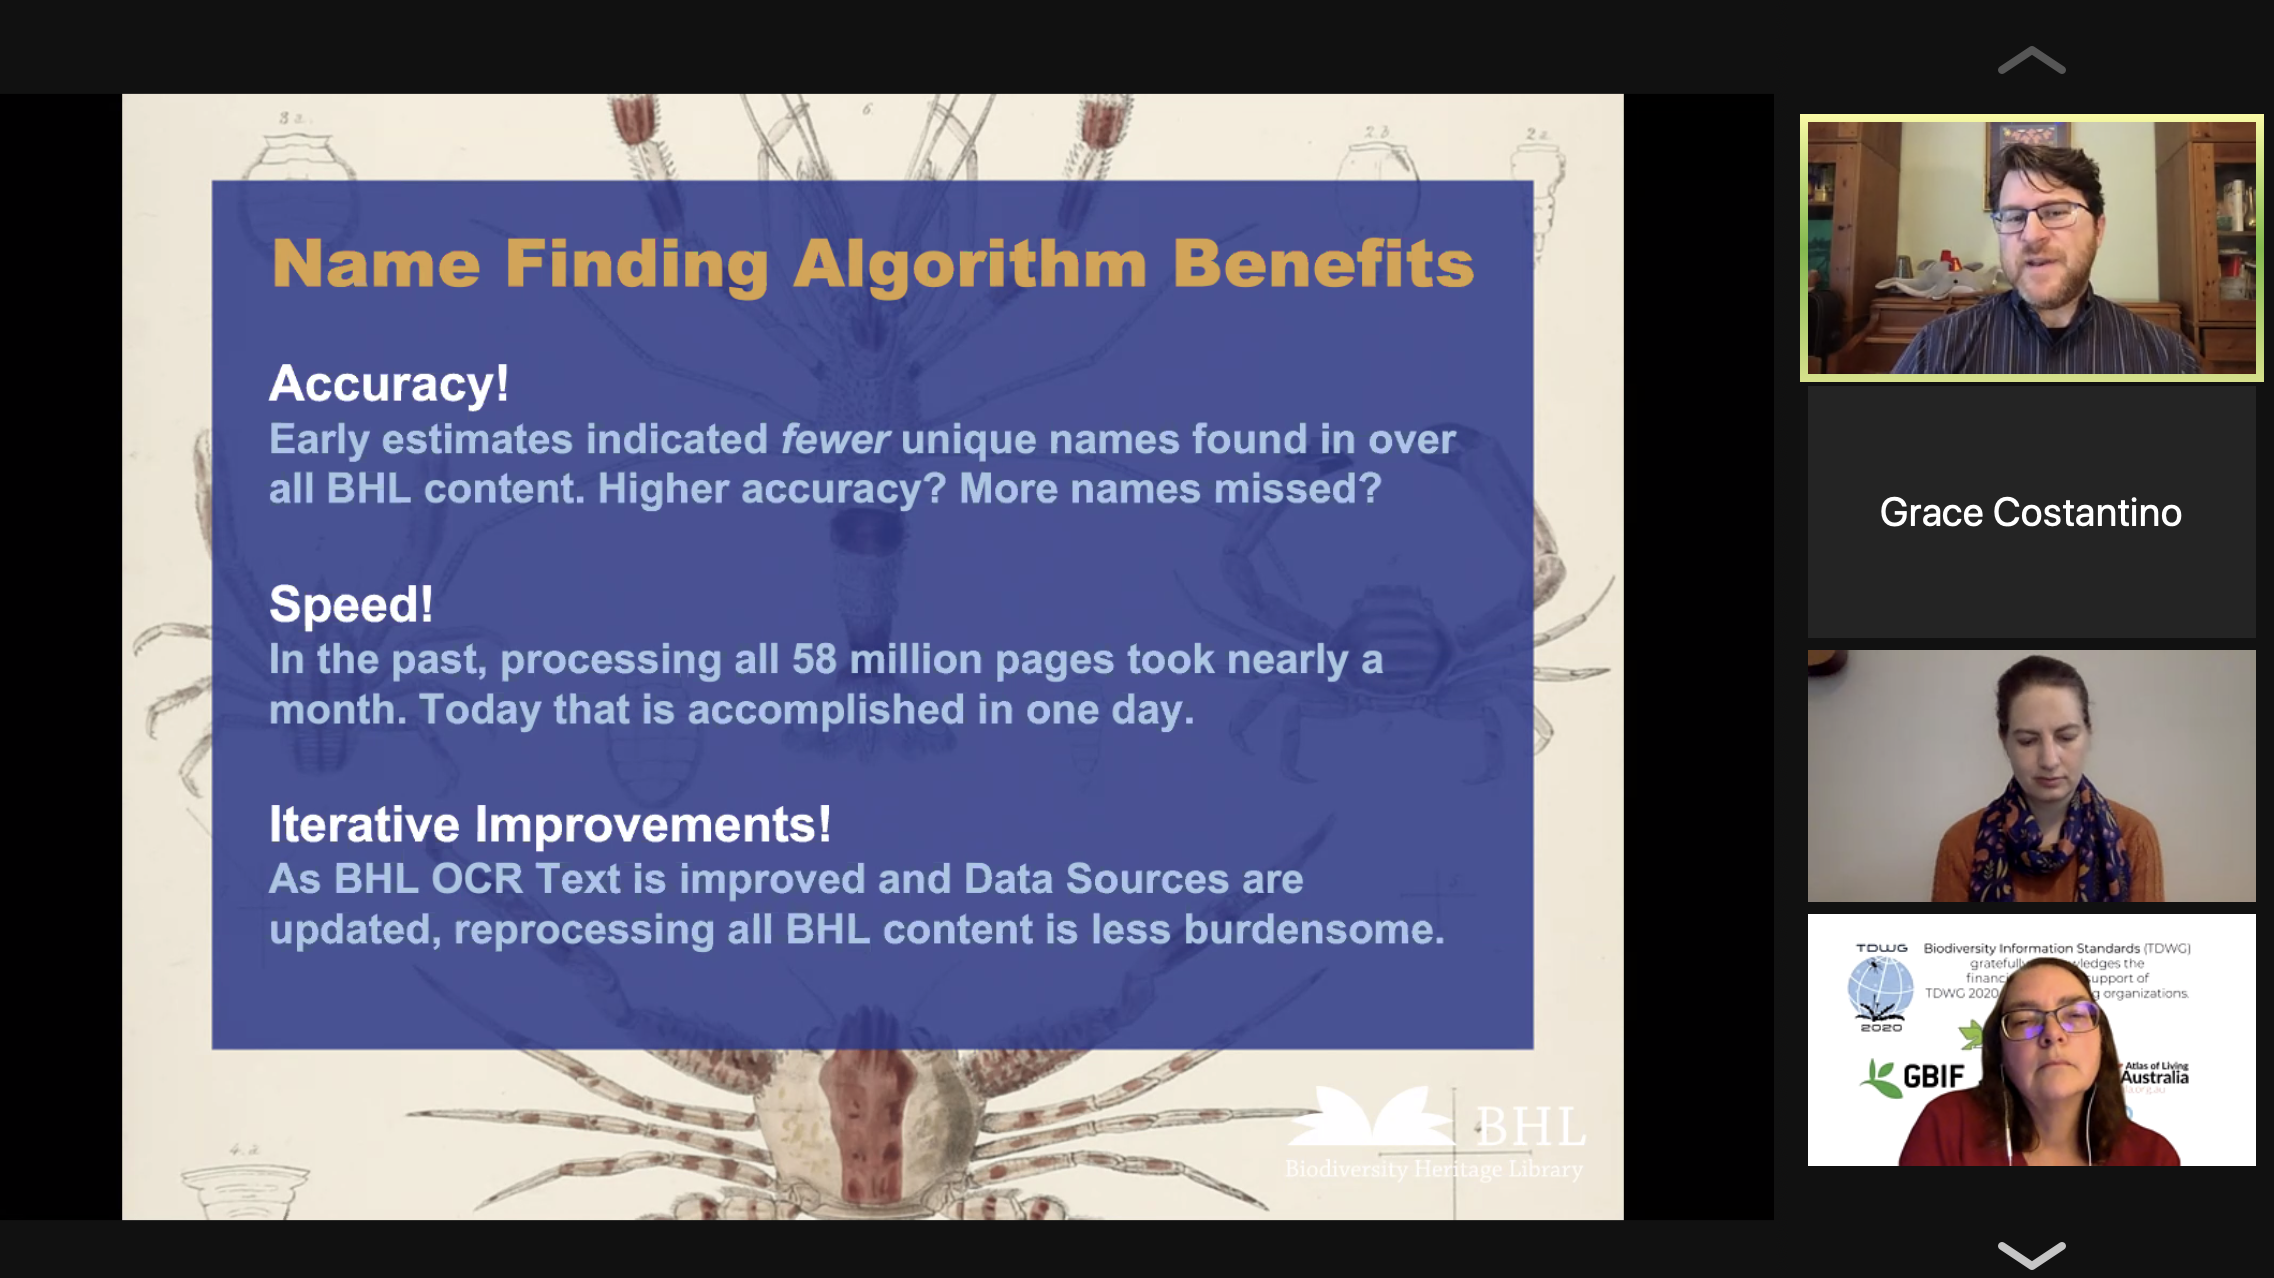 Screenshot of a Zoom call with a slide showing benefits of BHL's new name finding algorithm.